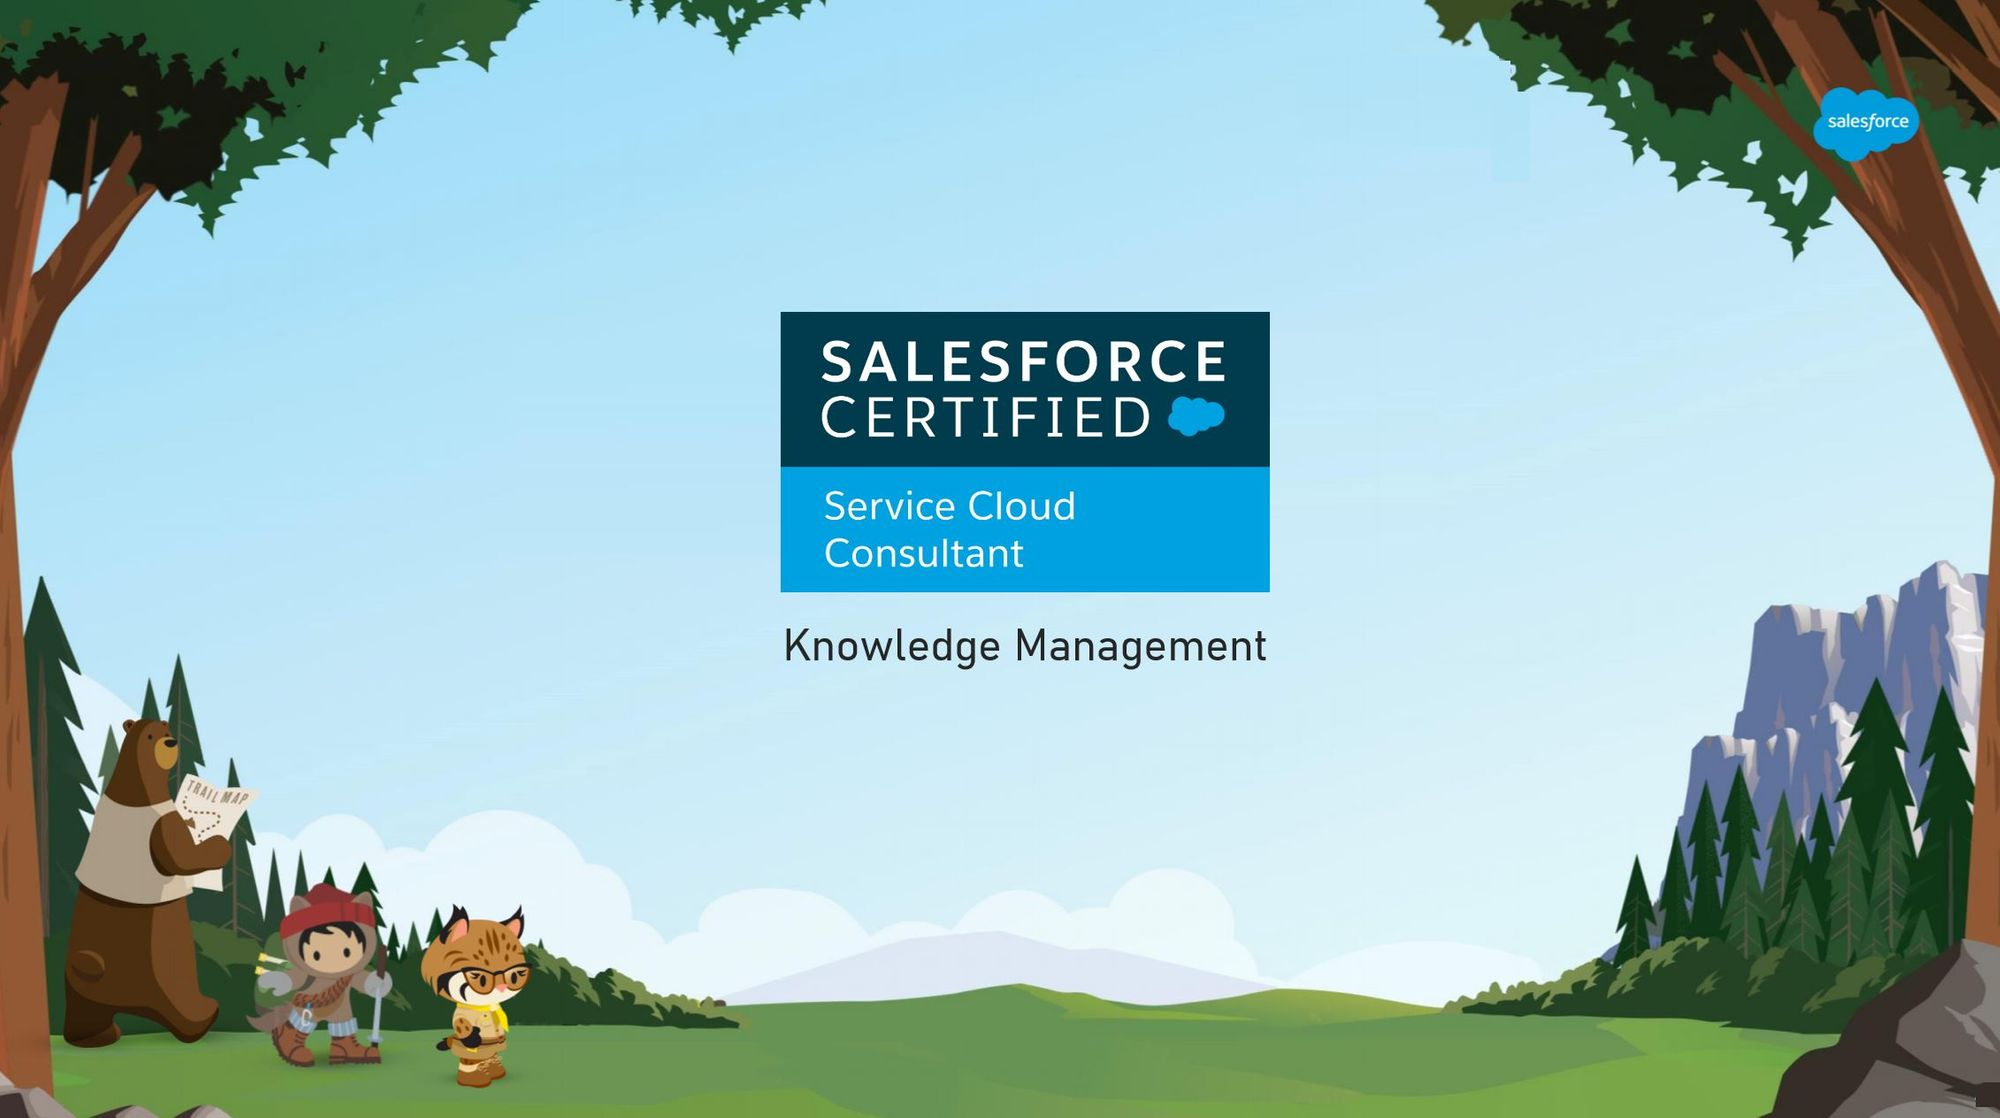 Salesforce Service Cloud Consultant Exam Preparation: Knowledge Management